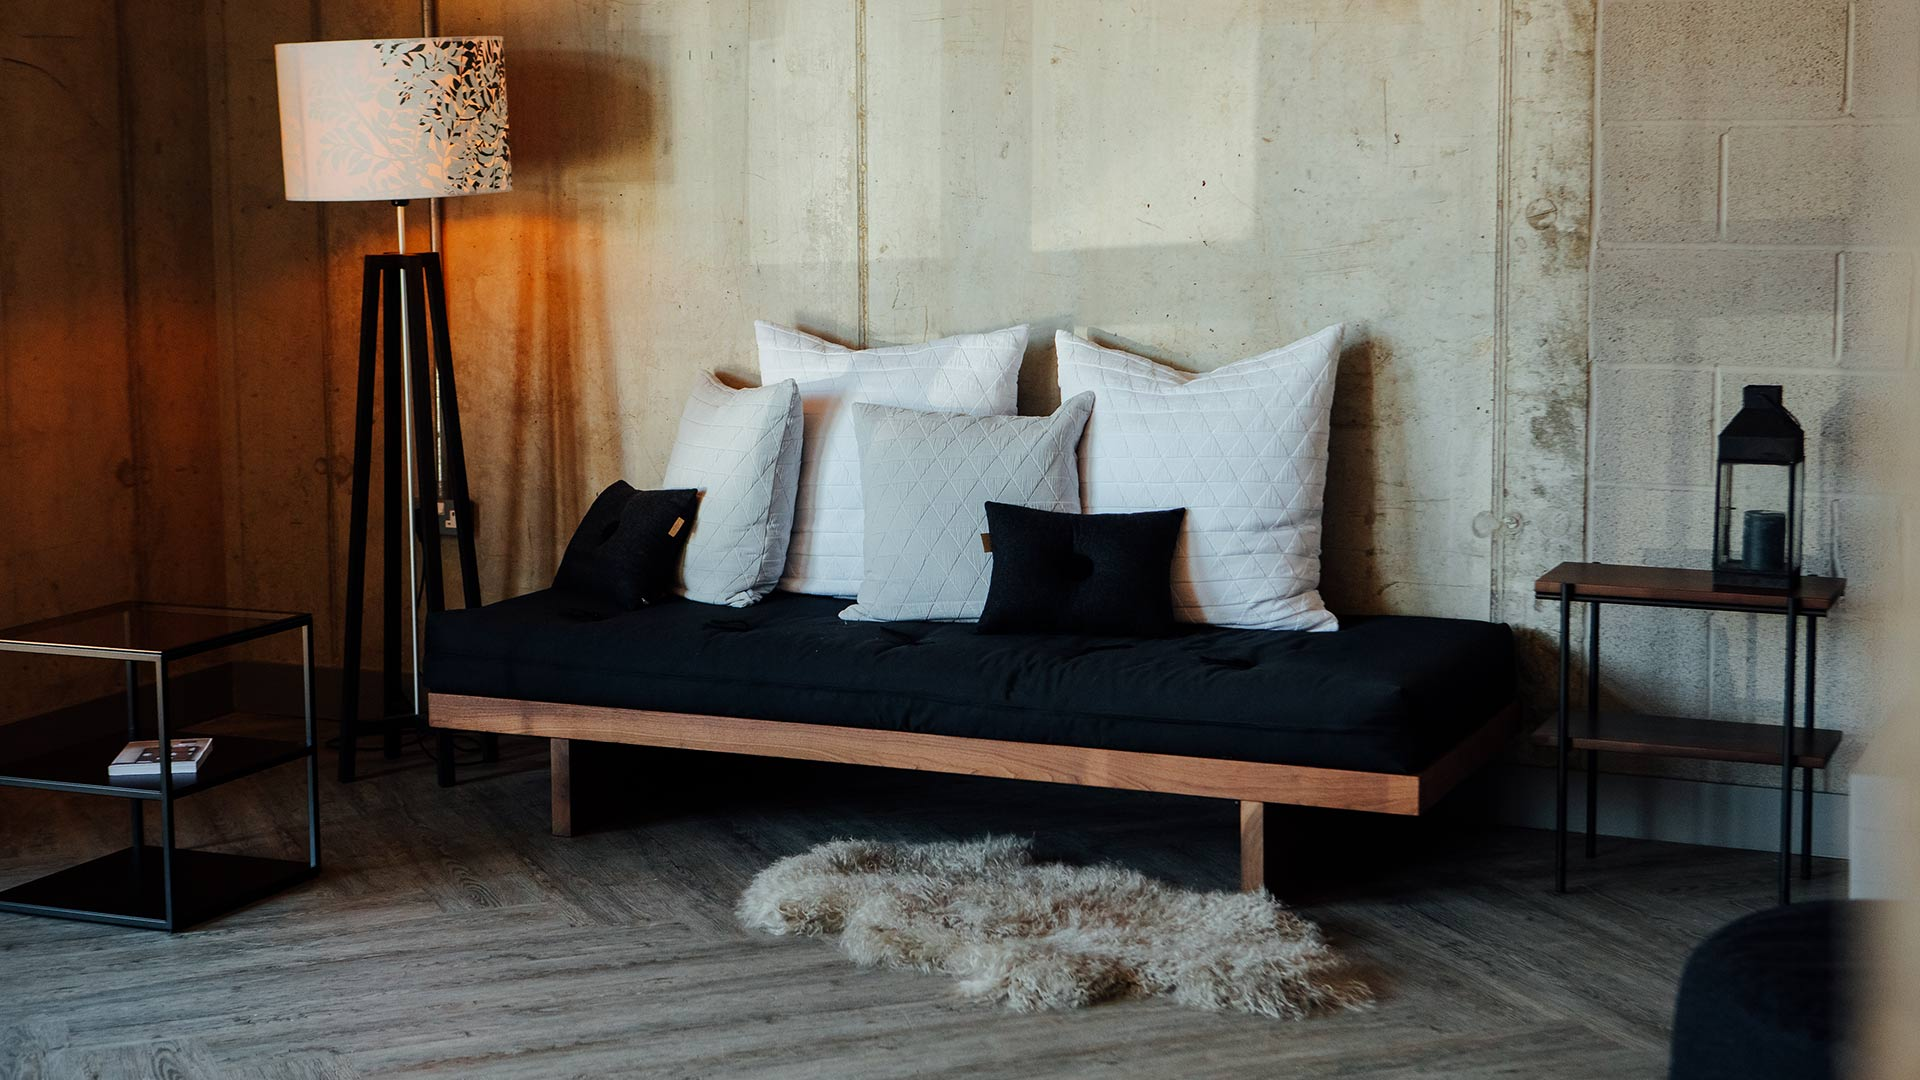 the Kyoto futon day-bed is used here as a sofa, a great spare bed with dual use